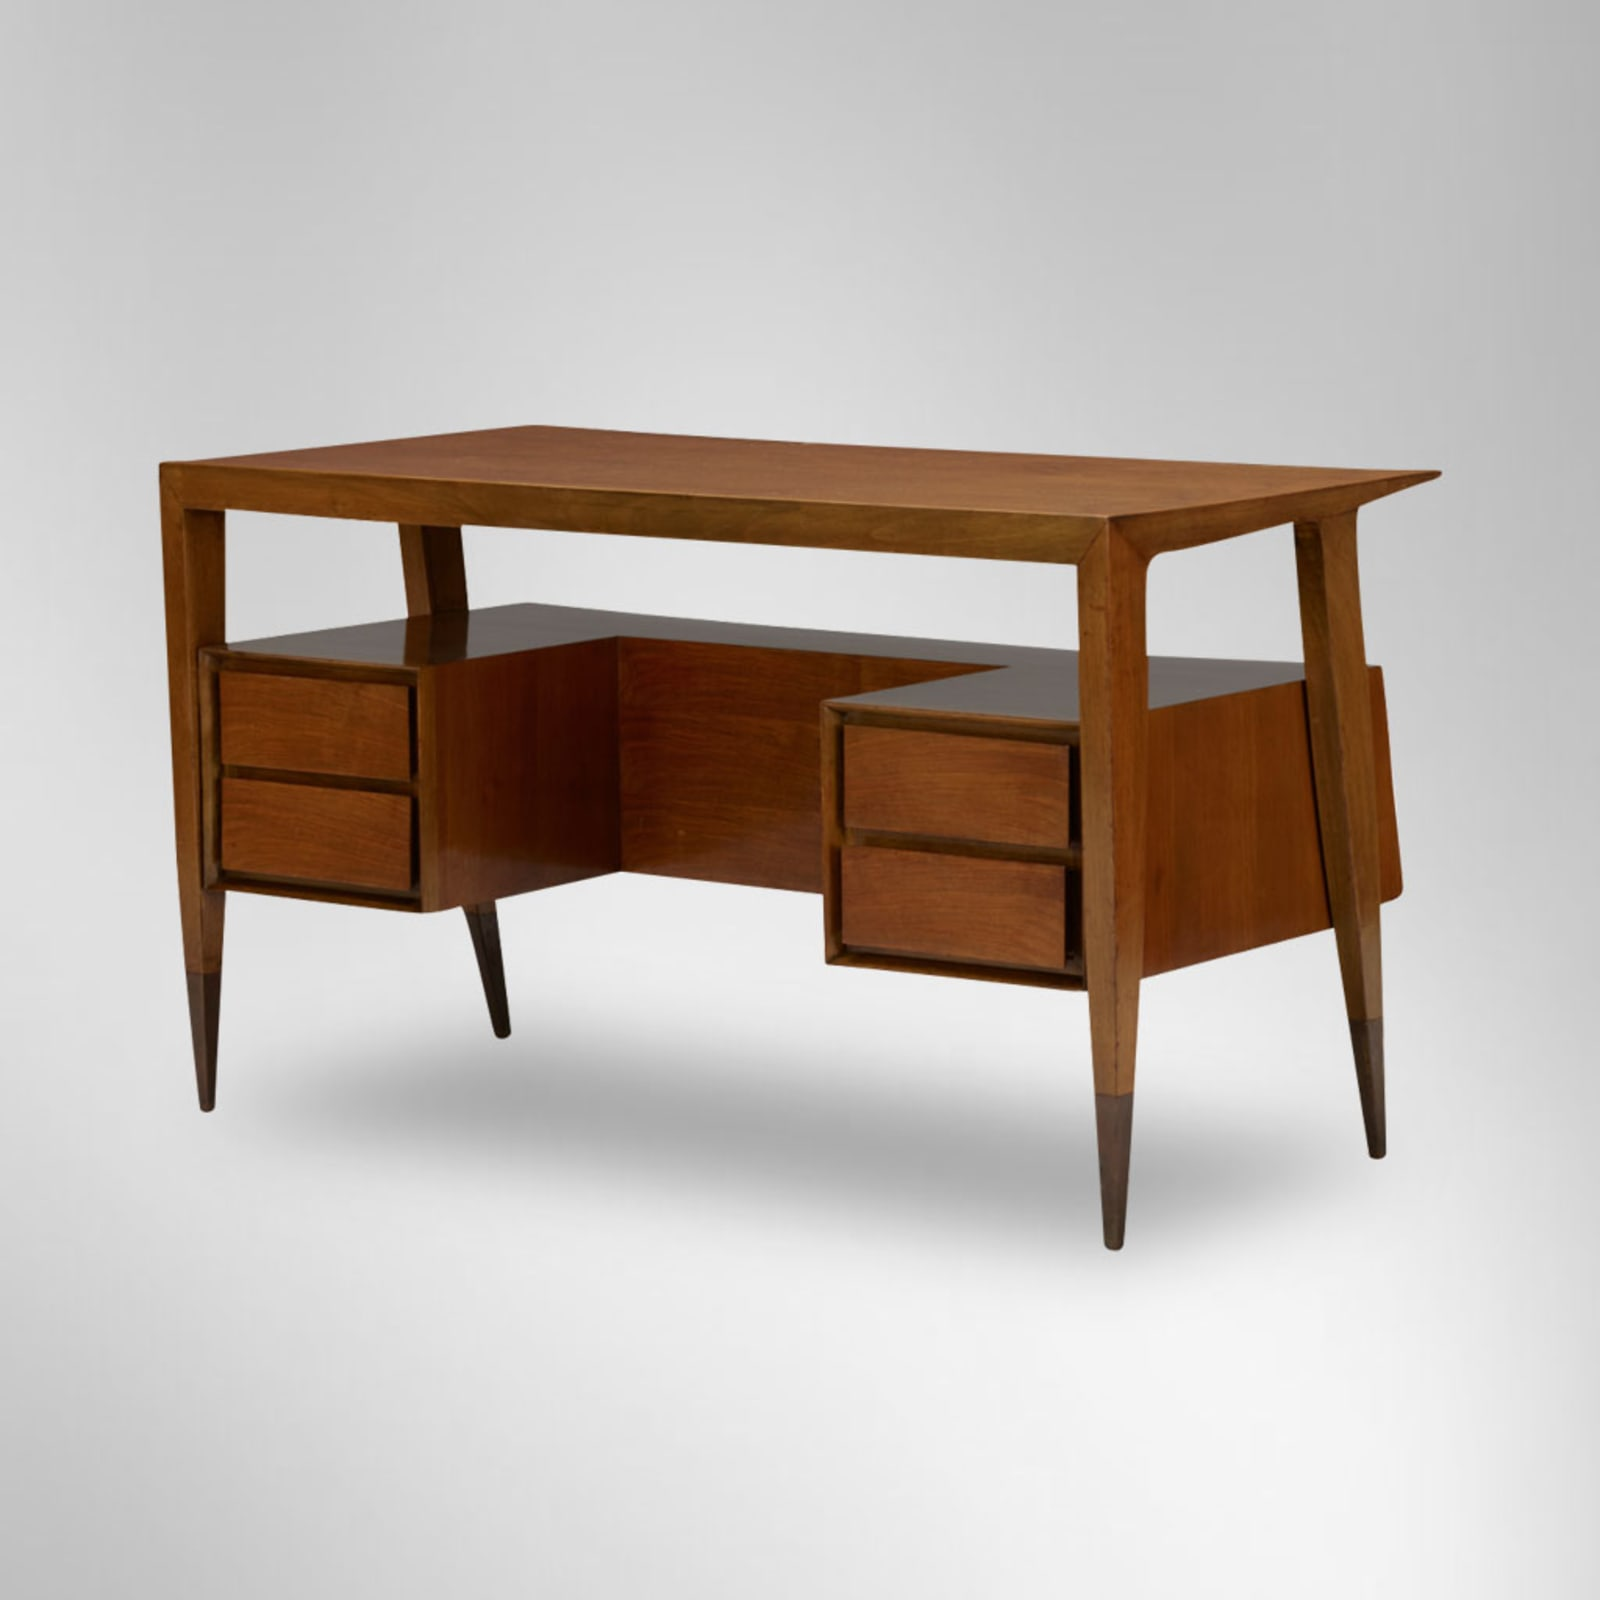 Gio Ponti  Desk, early 1950's  Italy  wood, with brass sabots on tapering feet  With Certificate of Authenticity (no. 19156/000) from the Gio Ponti Archives.  H 74 / L 128 / D 65 cm